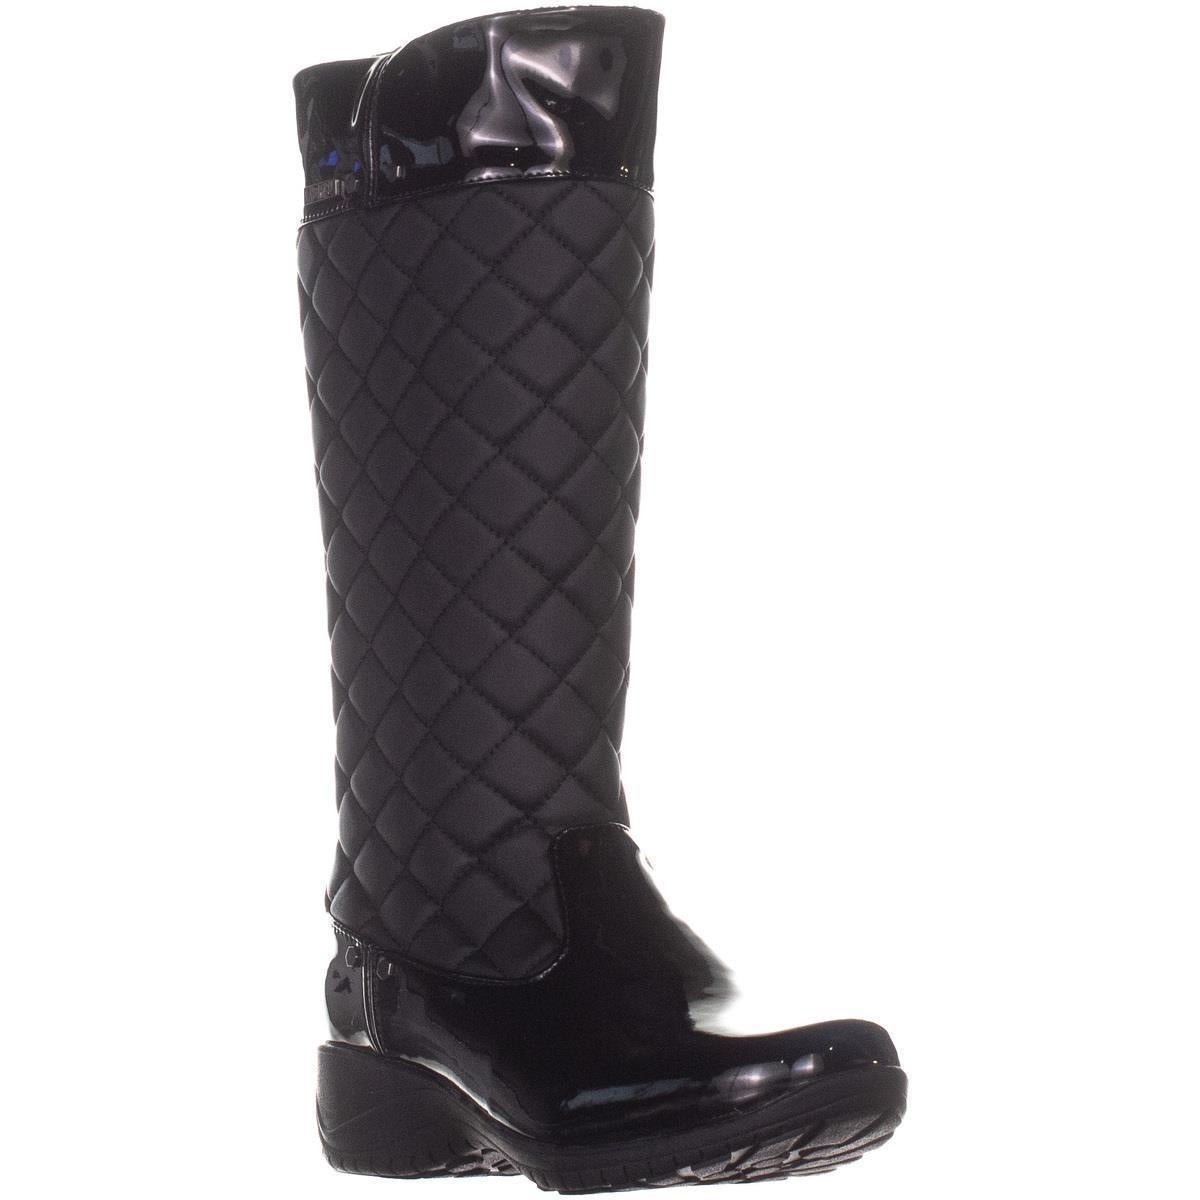 e9cfd57453f9 Buy Snow Women s Boots Online at Overstock